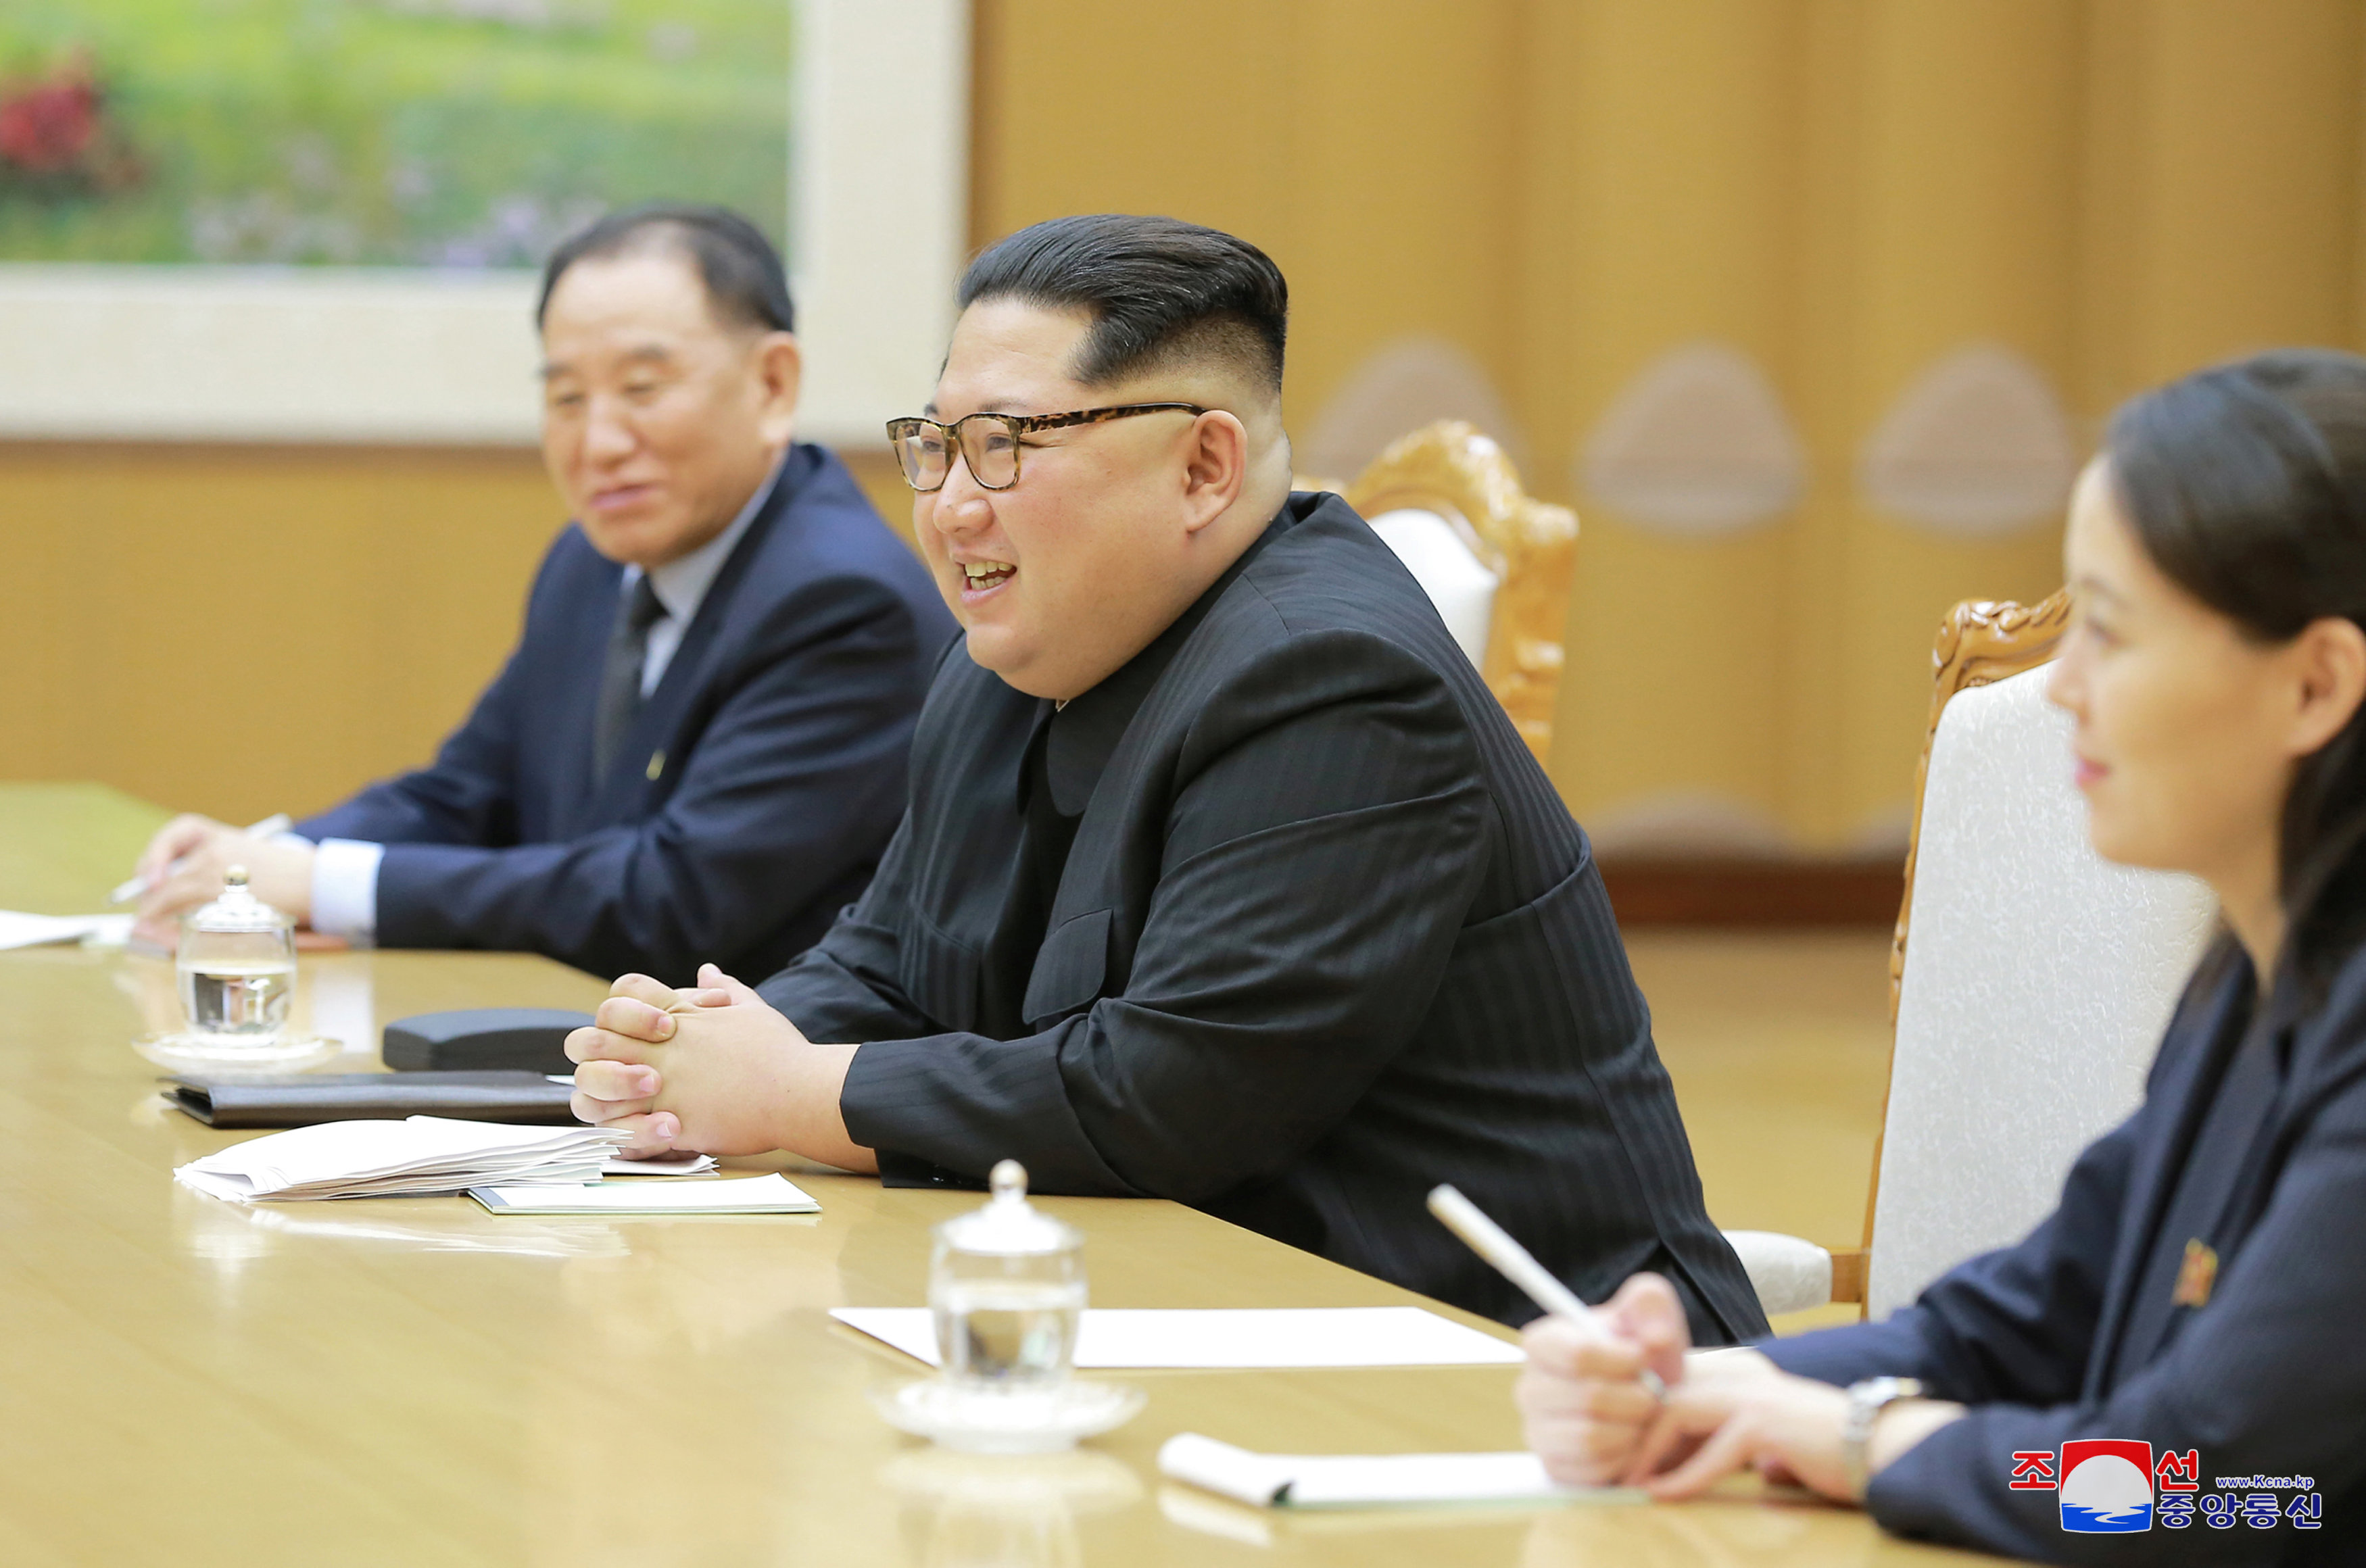 North Korean leader Kim Jong Un meets members of the special delegation of South Korea's President in this photo released by North Korea's Korean Central News Agency (KCNA) on March 6, 2018. KCNA/via Reuter